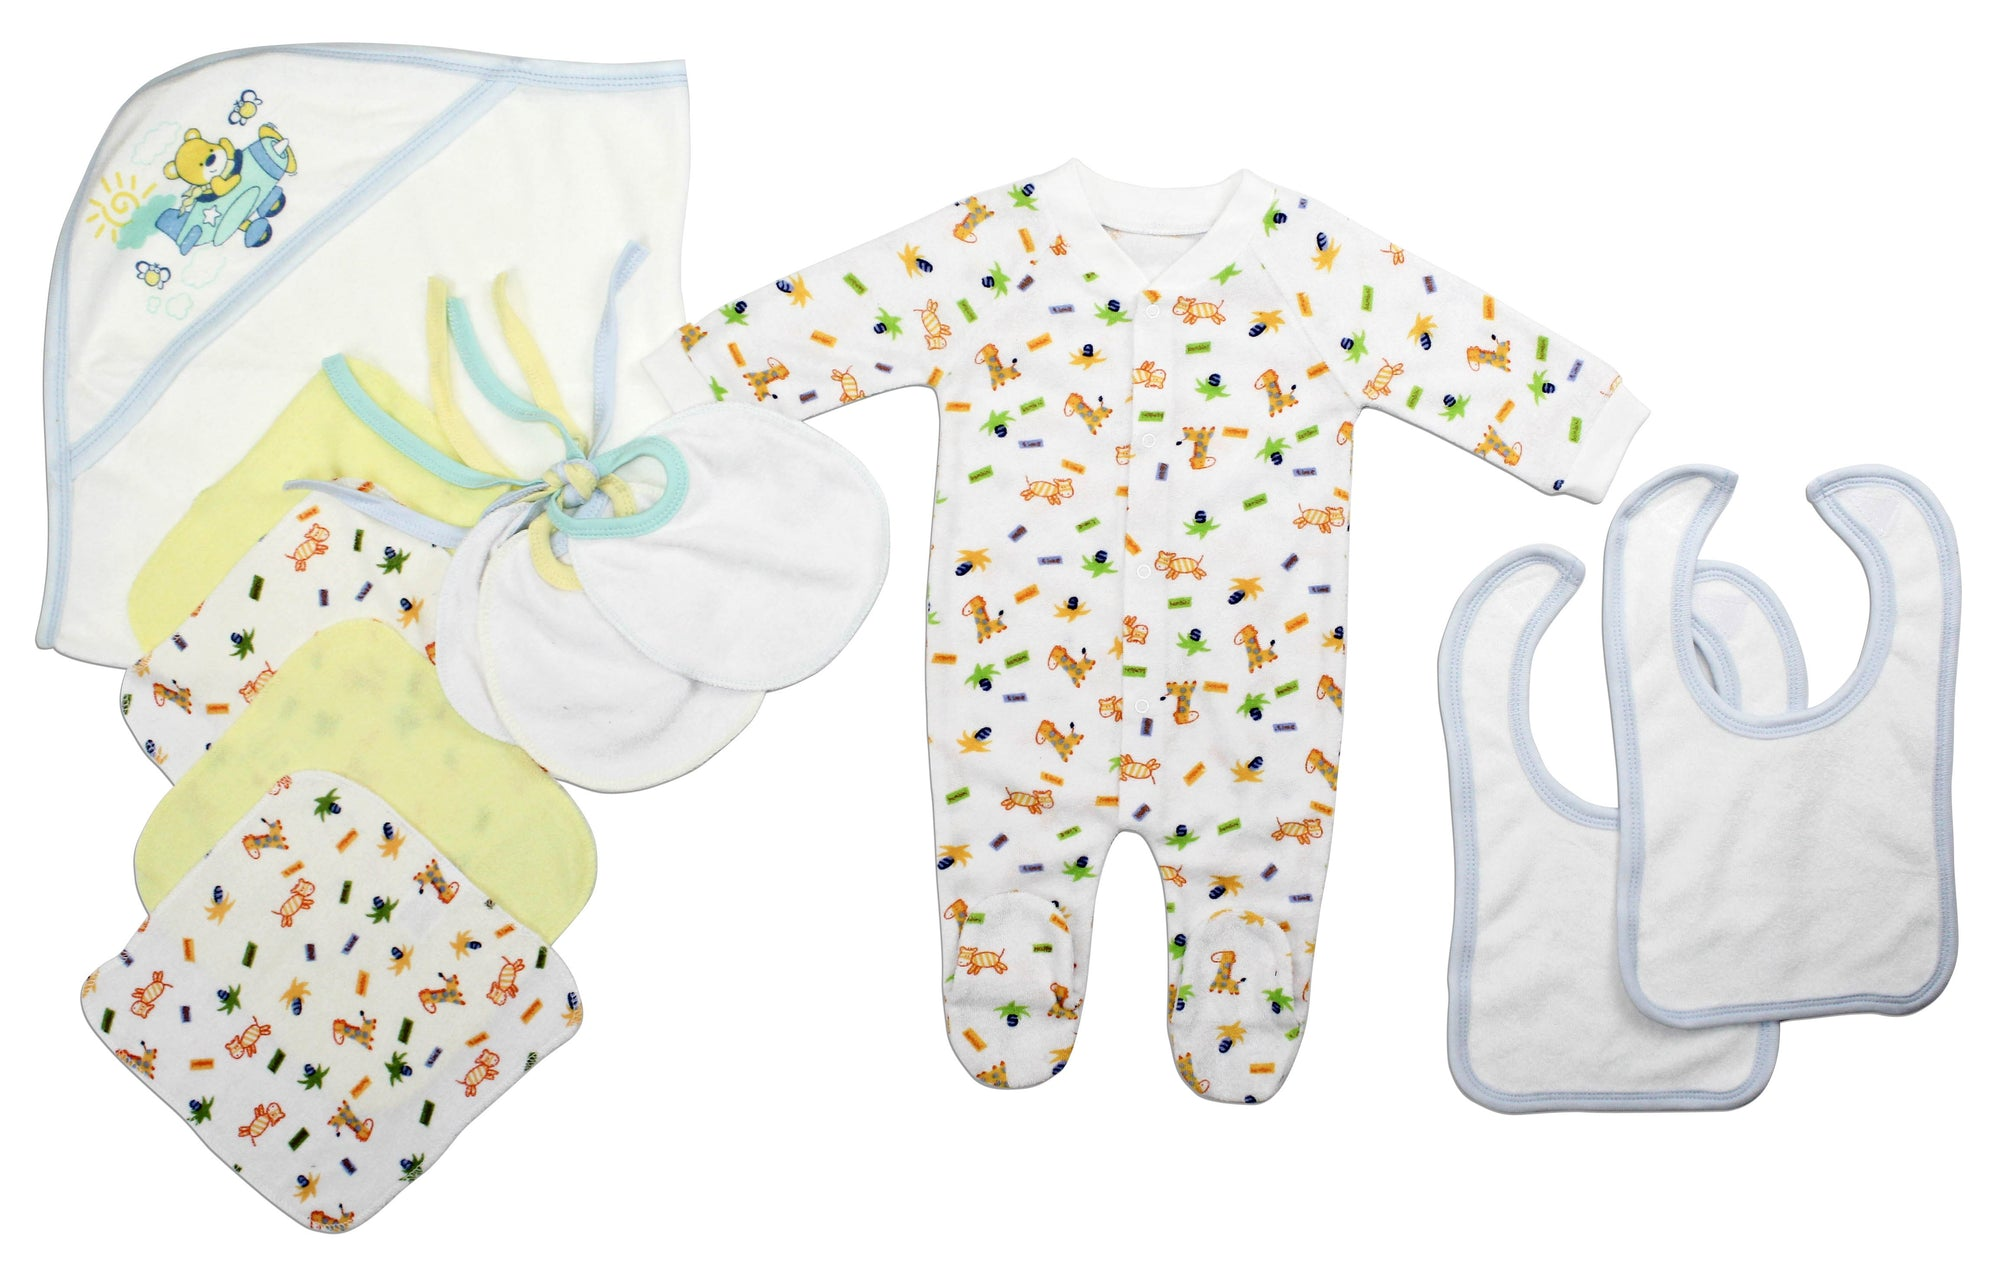 Bambini Newborn Baby Boys 11 pcs Layette Baby Shower Gift Set - Baby World Inc